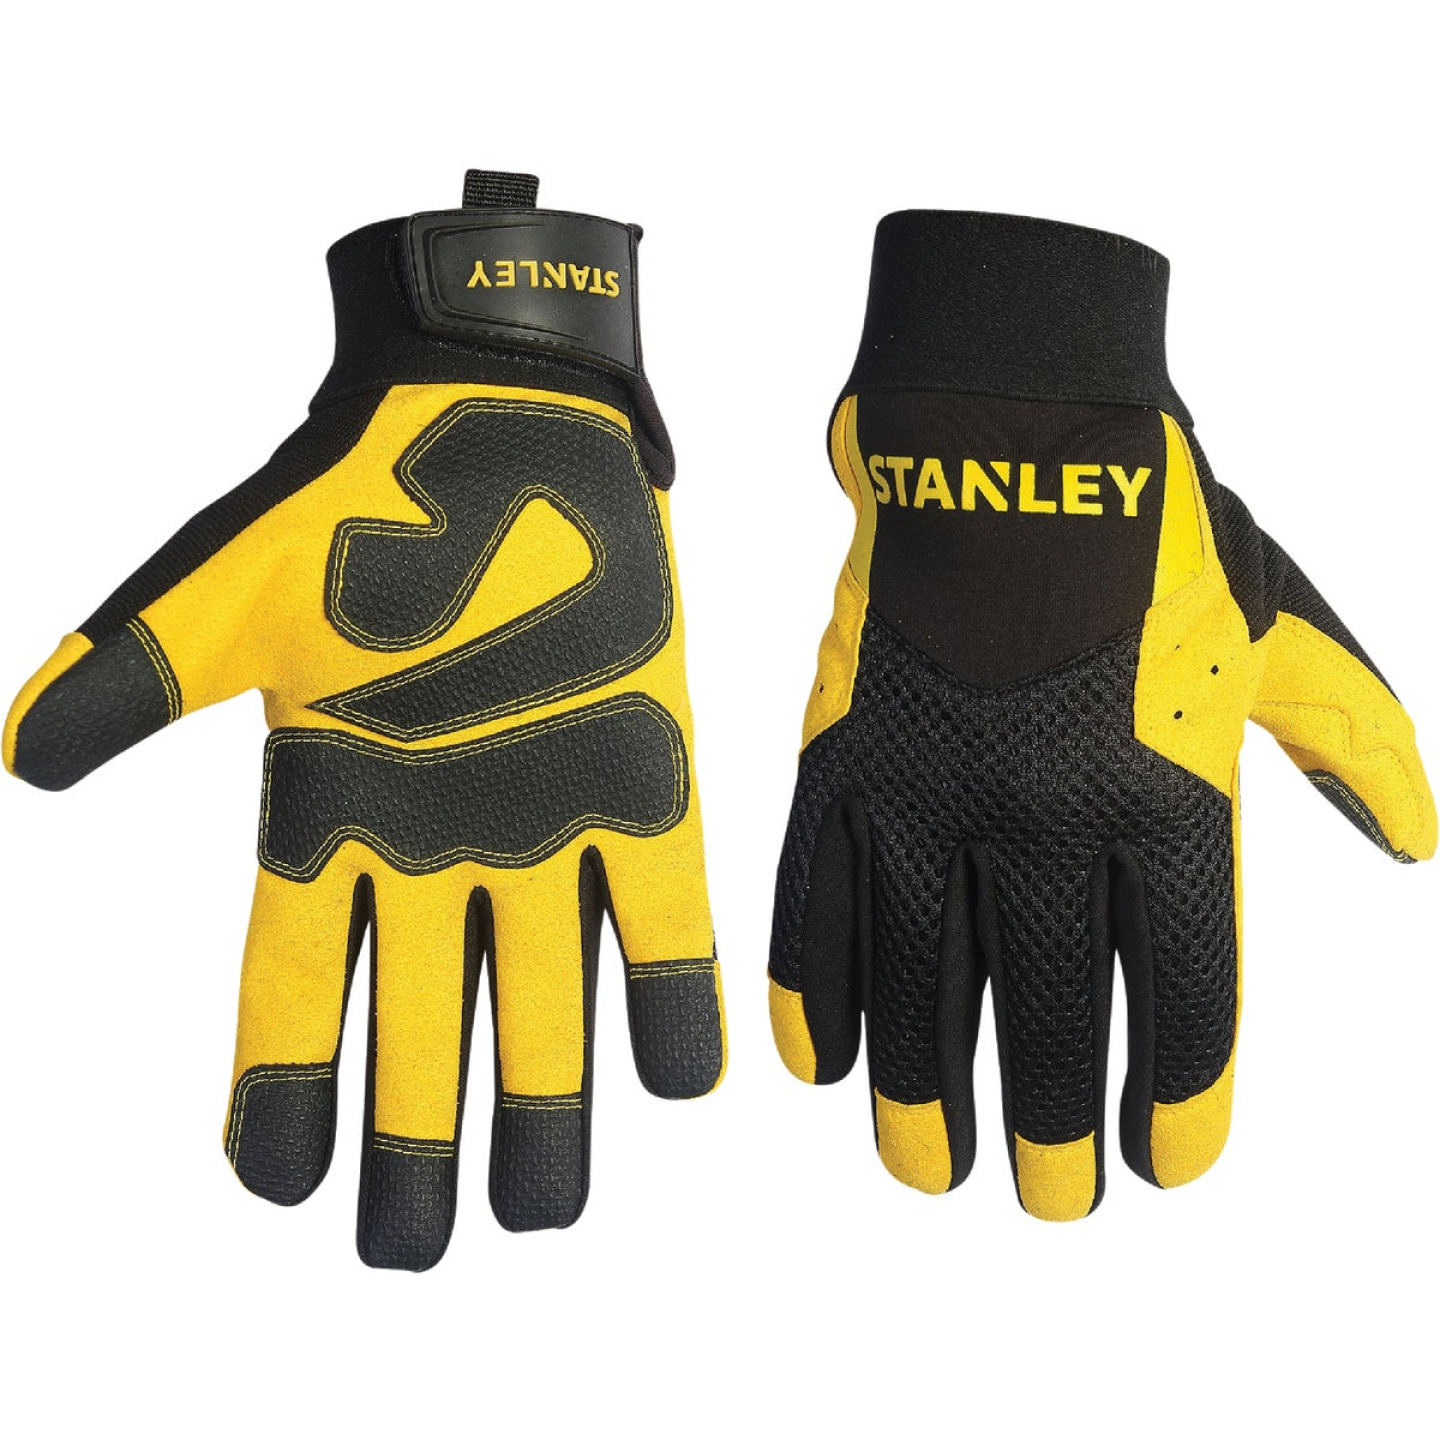 Stanley Men's Medium Synthetic Leather High Performance Glove Image 1